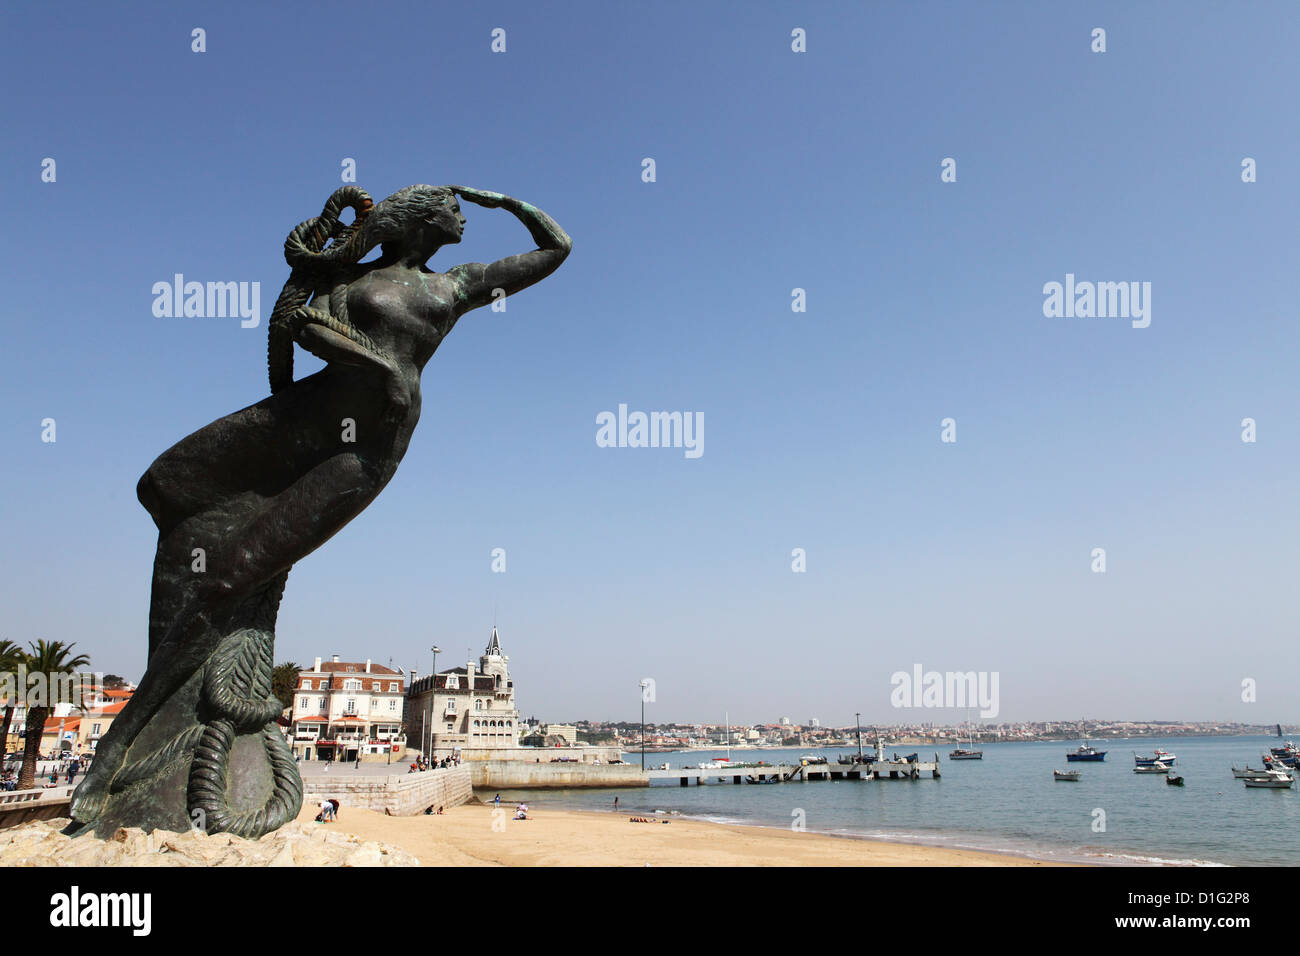 Nautical statue of a female figure looking towards the Atlantic Ocean at Ribeira Beach, Cascais, near Lisbon, Portugal, - Stock Image